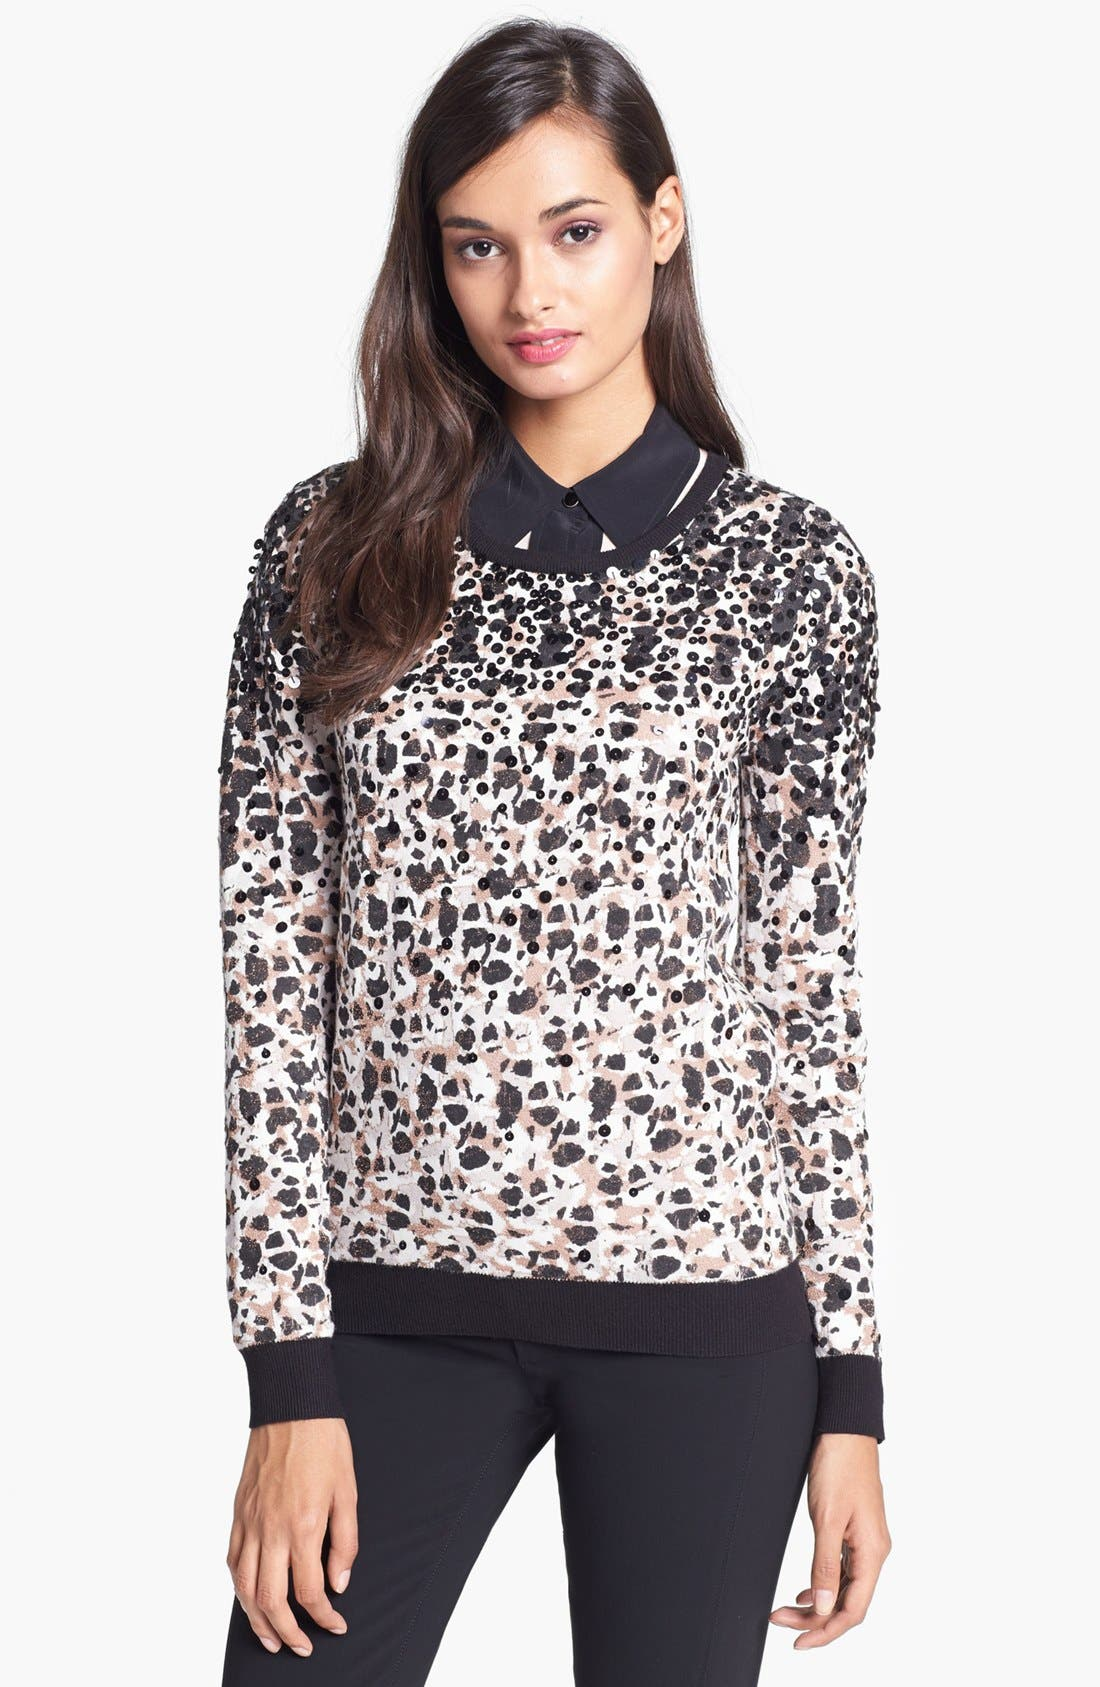 Alternate Image 1 Selected - MARC BY MARC JACOBS 'Isa' Sequin Crewneck Sweater